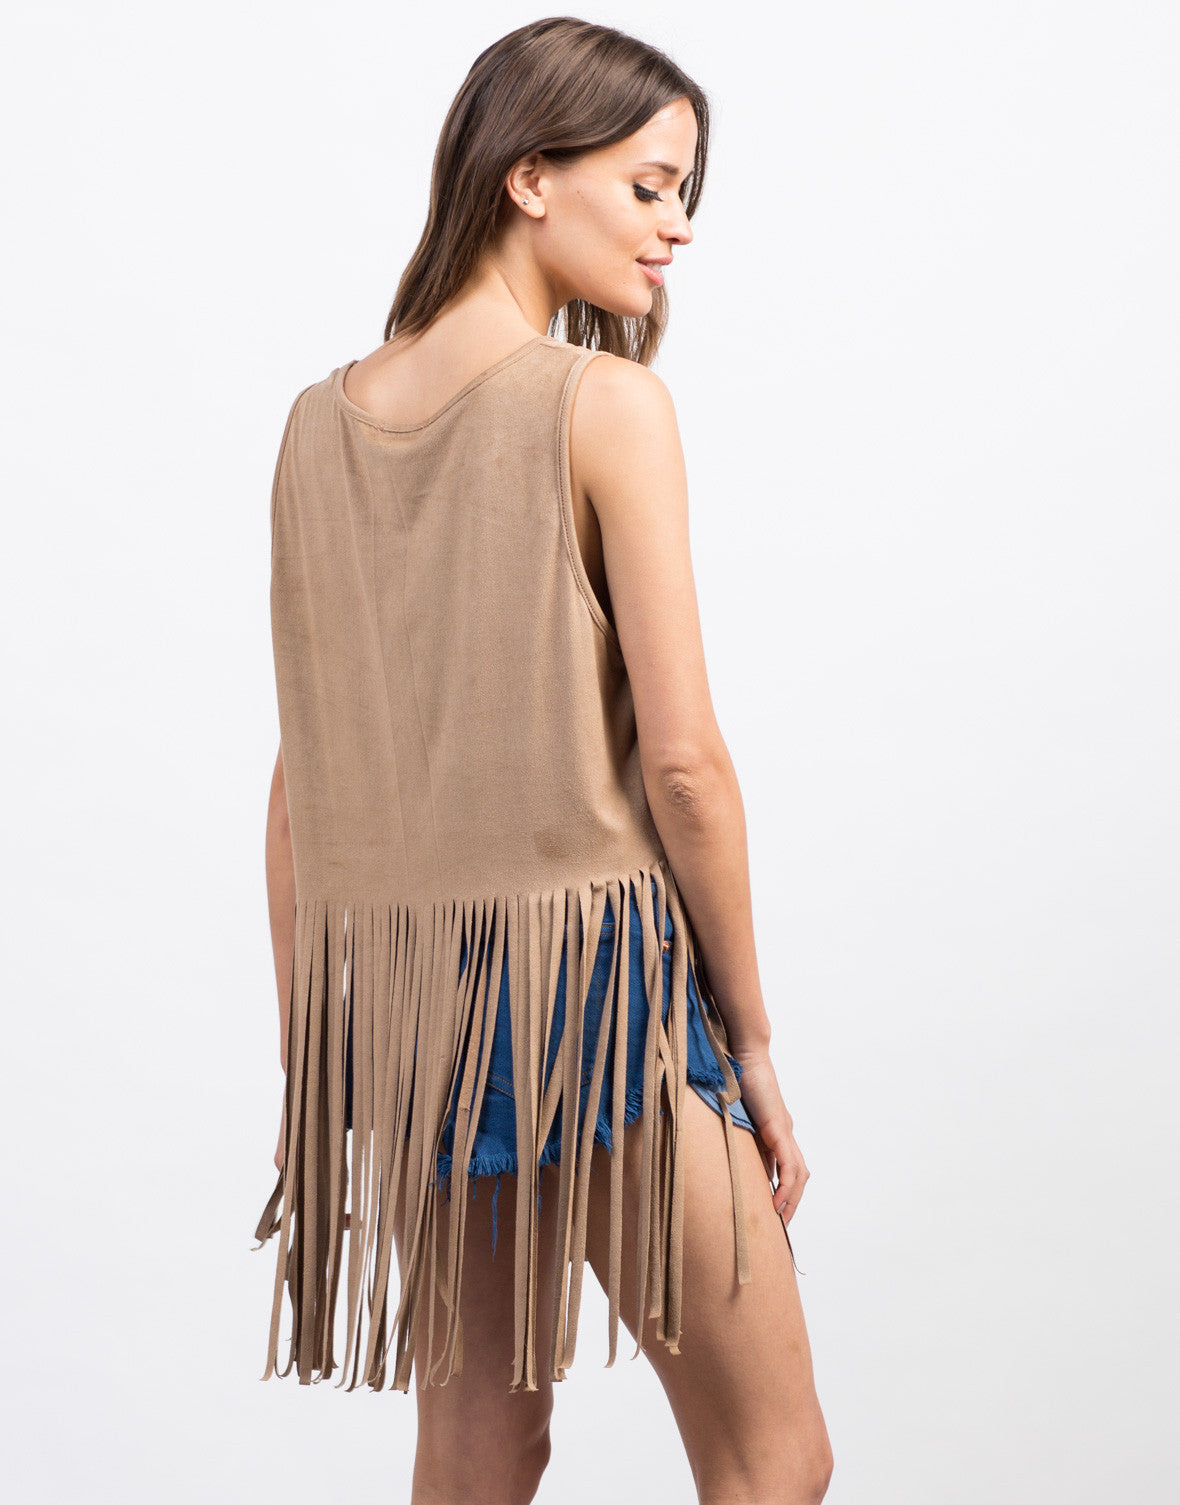 Back View of Suede Fringe Tank Top